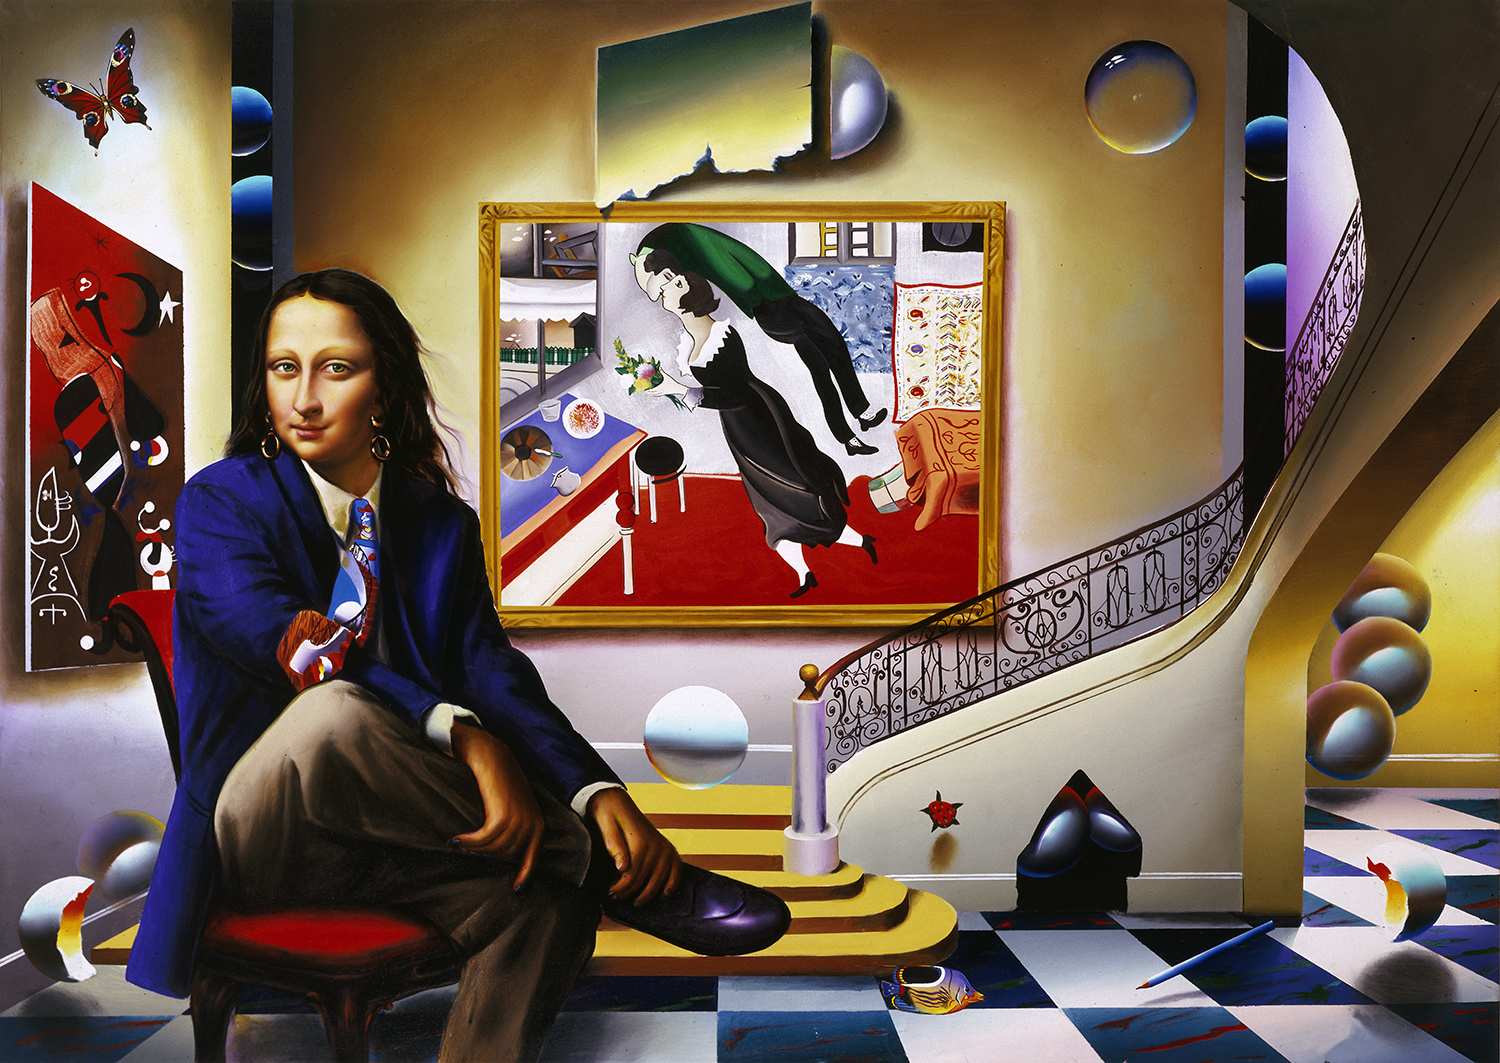 FERJO MONA WITH CHAGALL 60x40 in 2003